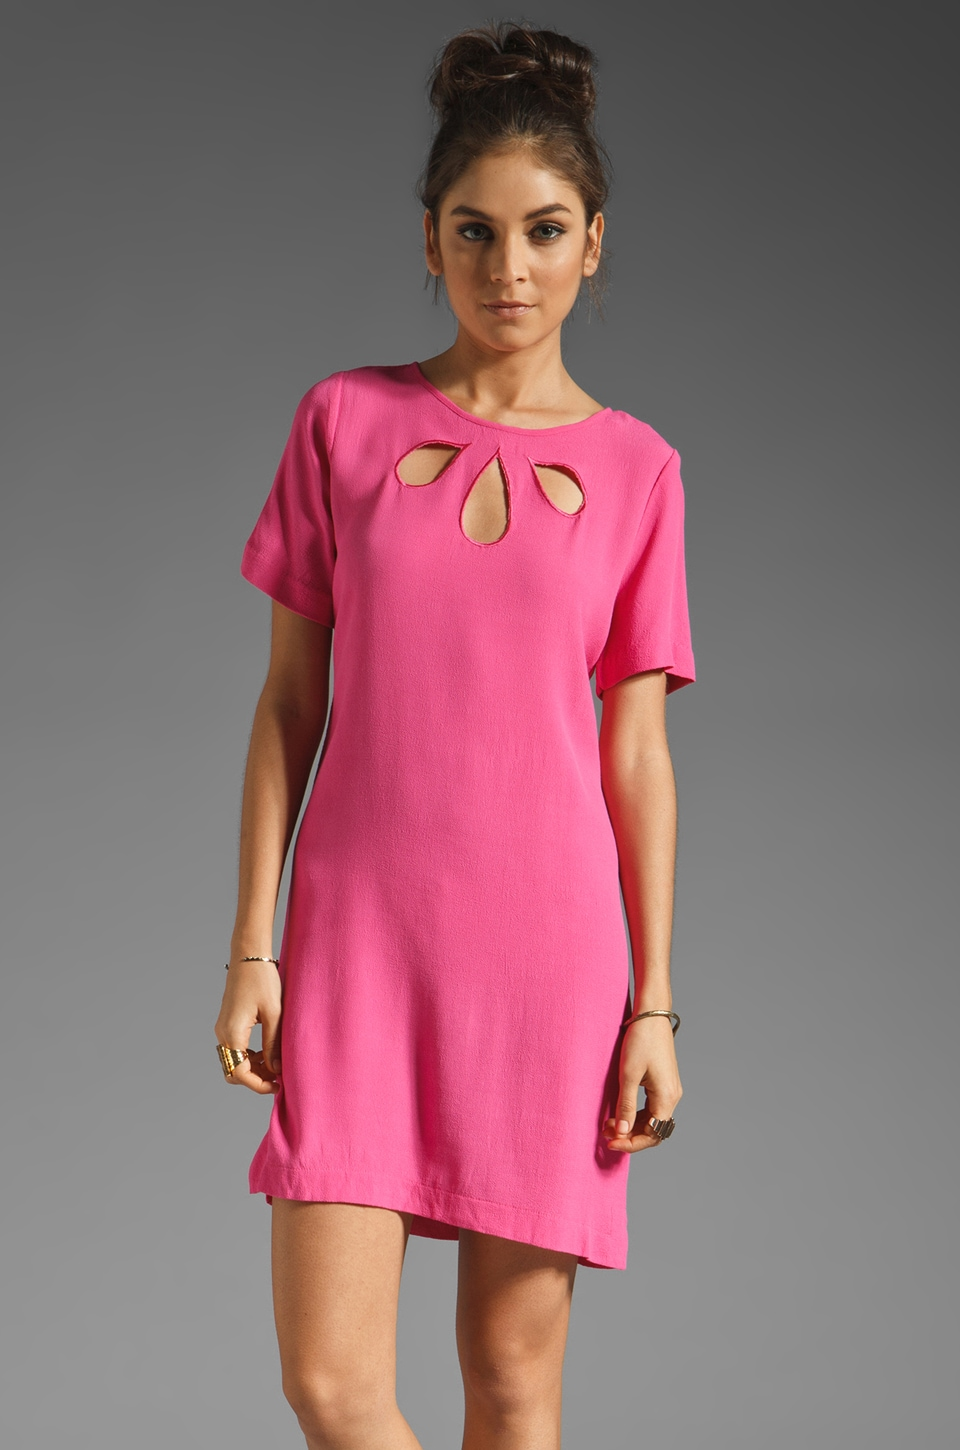 Something Else by Natalie Wood Tear Drop Tee Dress in Fuchsia